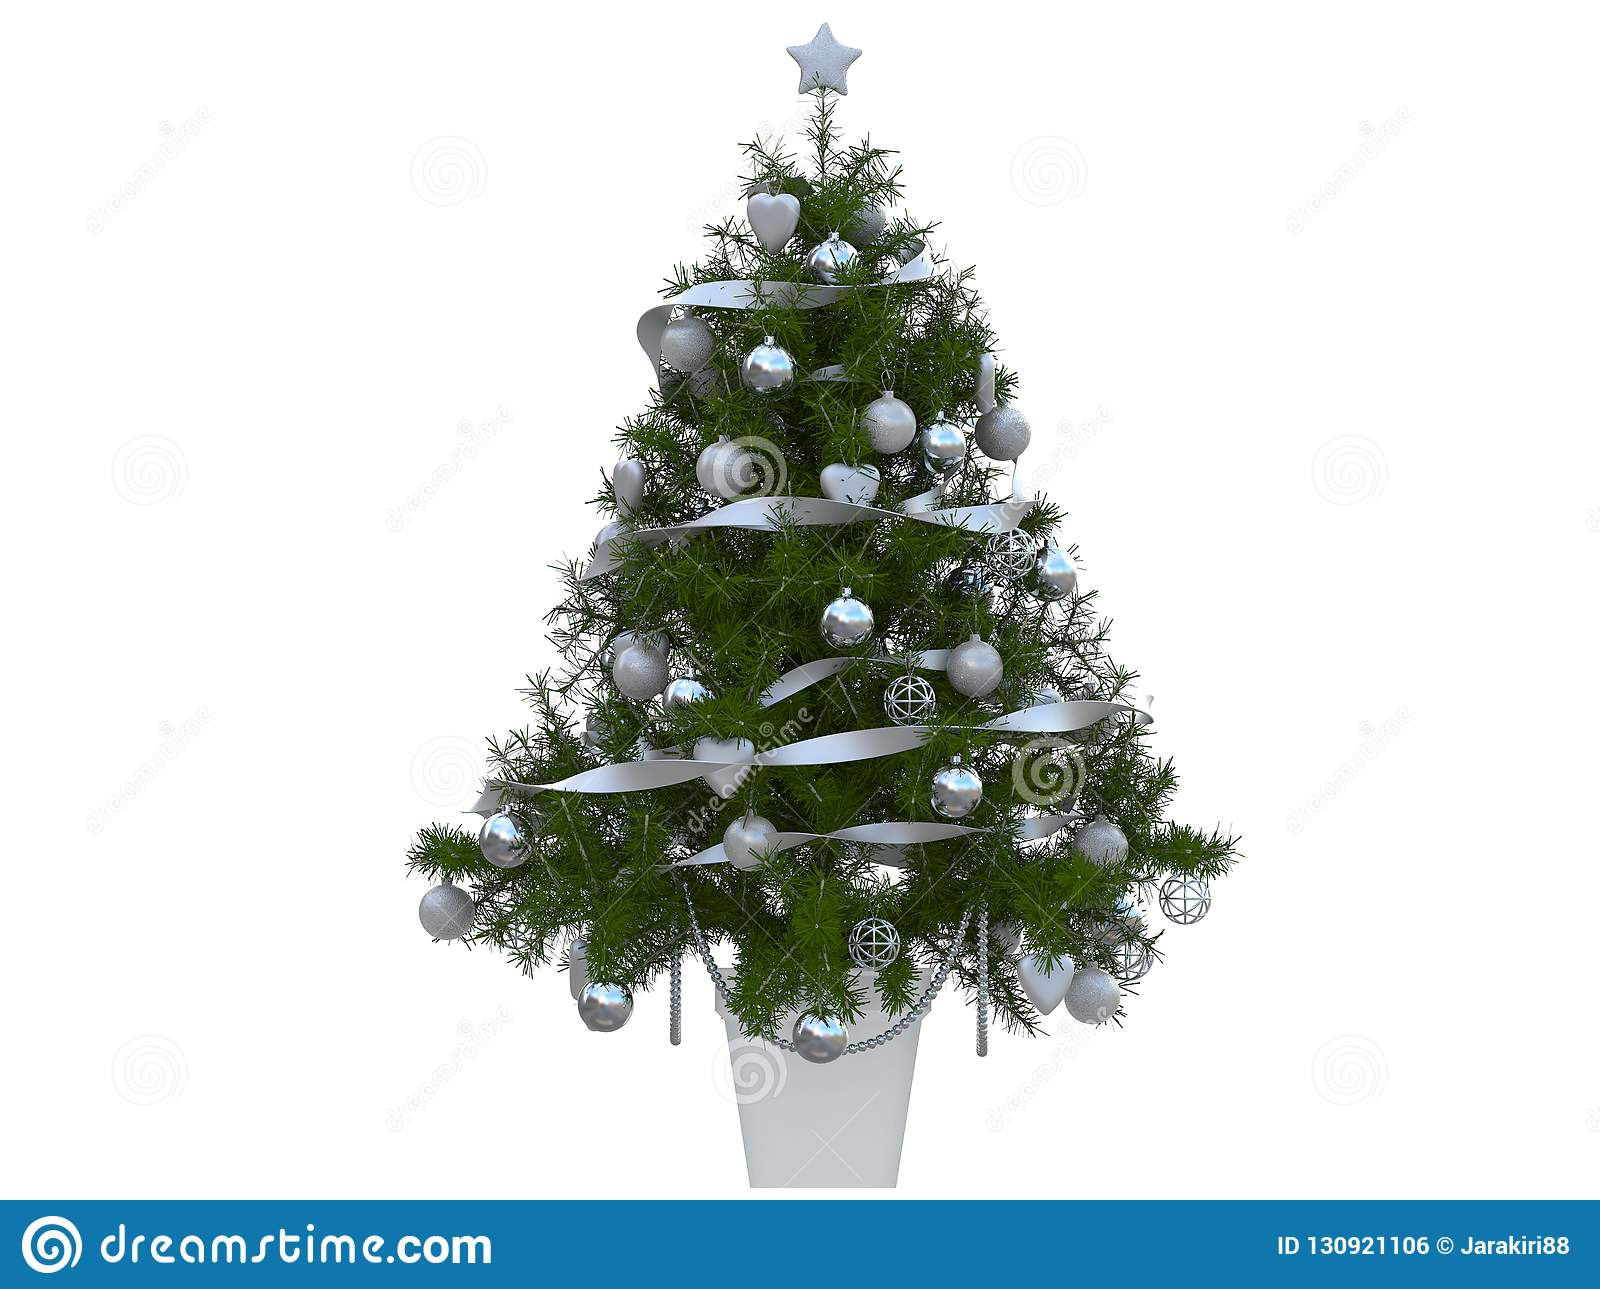 Colorful Christmas Tree With Christmas Balls Decoration White And